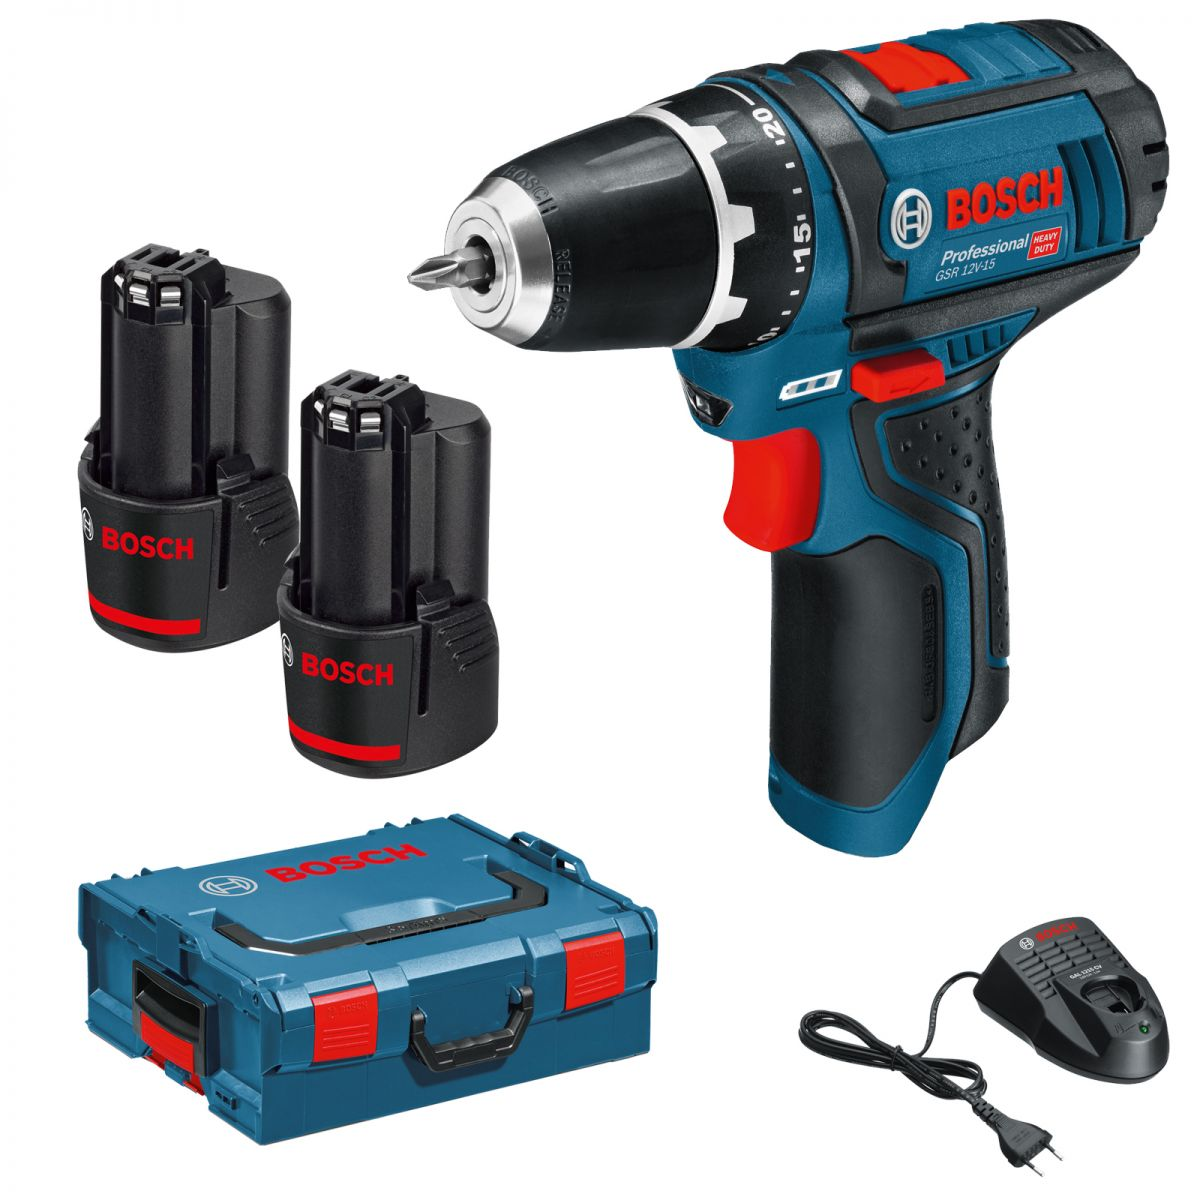 bosch prof cordless drill gsr 12v 15 2x 2ah li battery. Black Bedroom Furniture Sets. Home Design Ideas